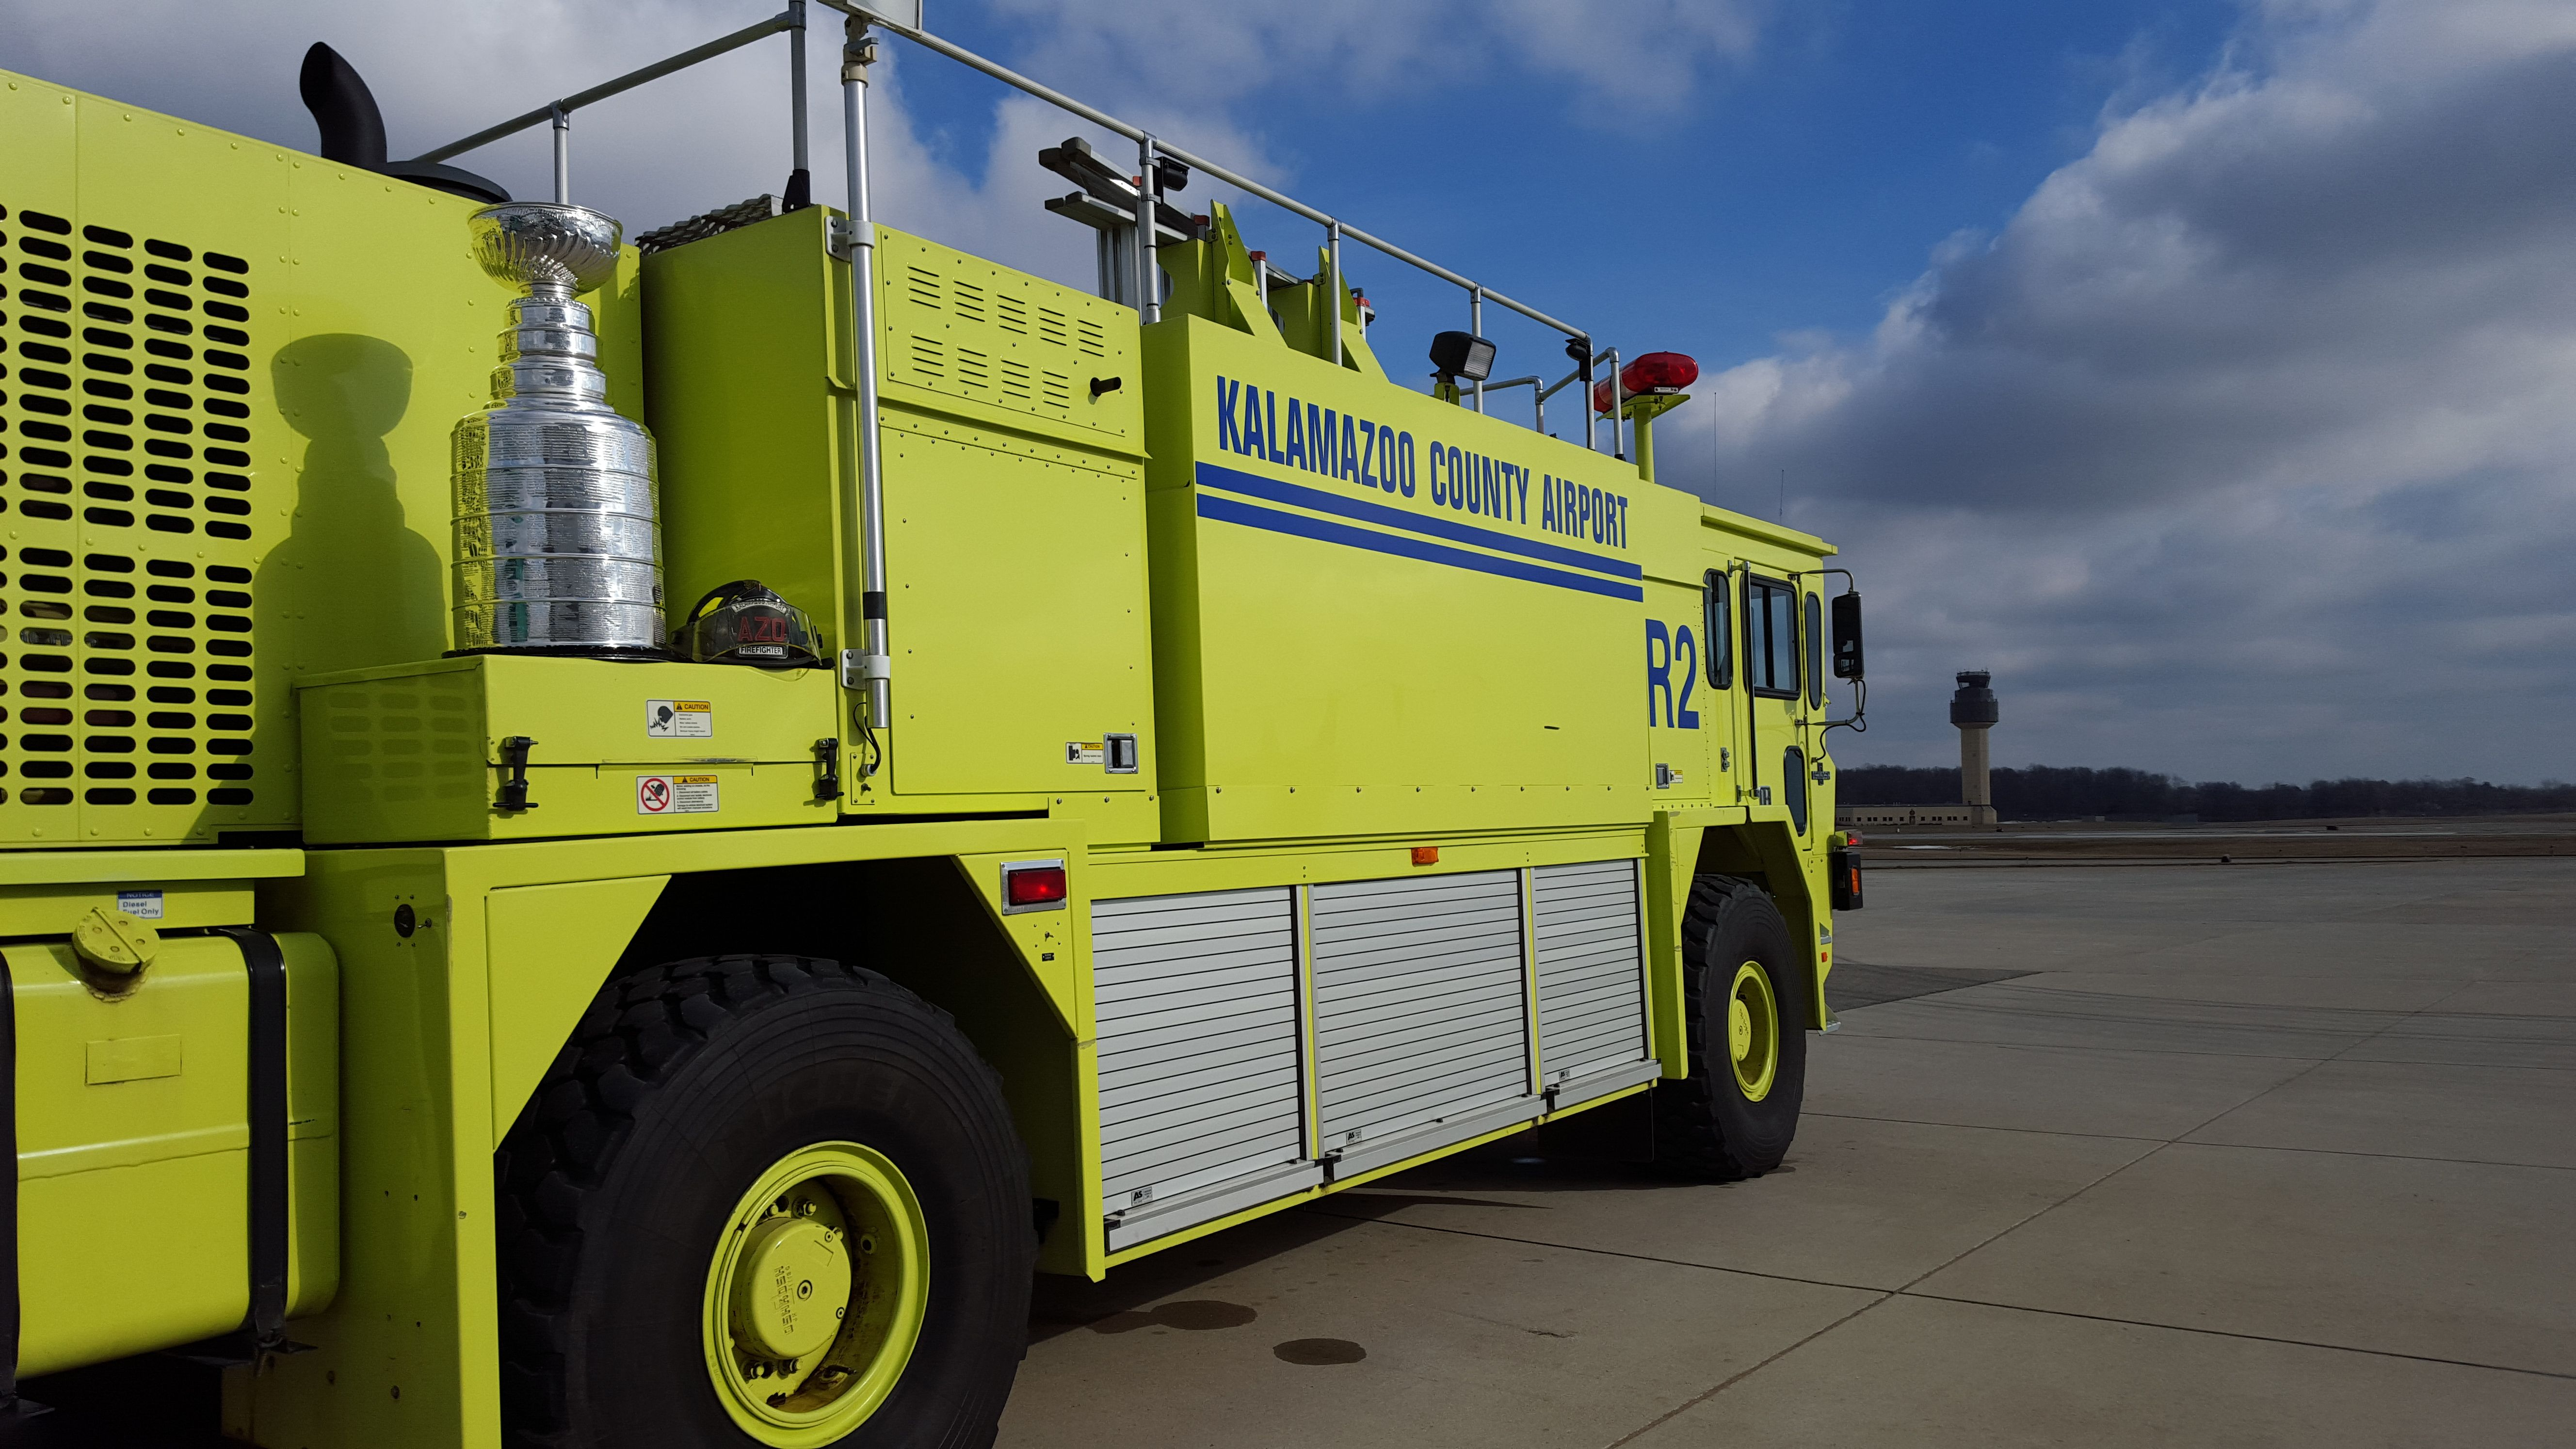 Stanley Cup at the Kalamazoo/Battle Creek International Airport in Kalamazoo Michigan with Rescue 2